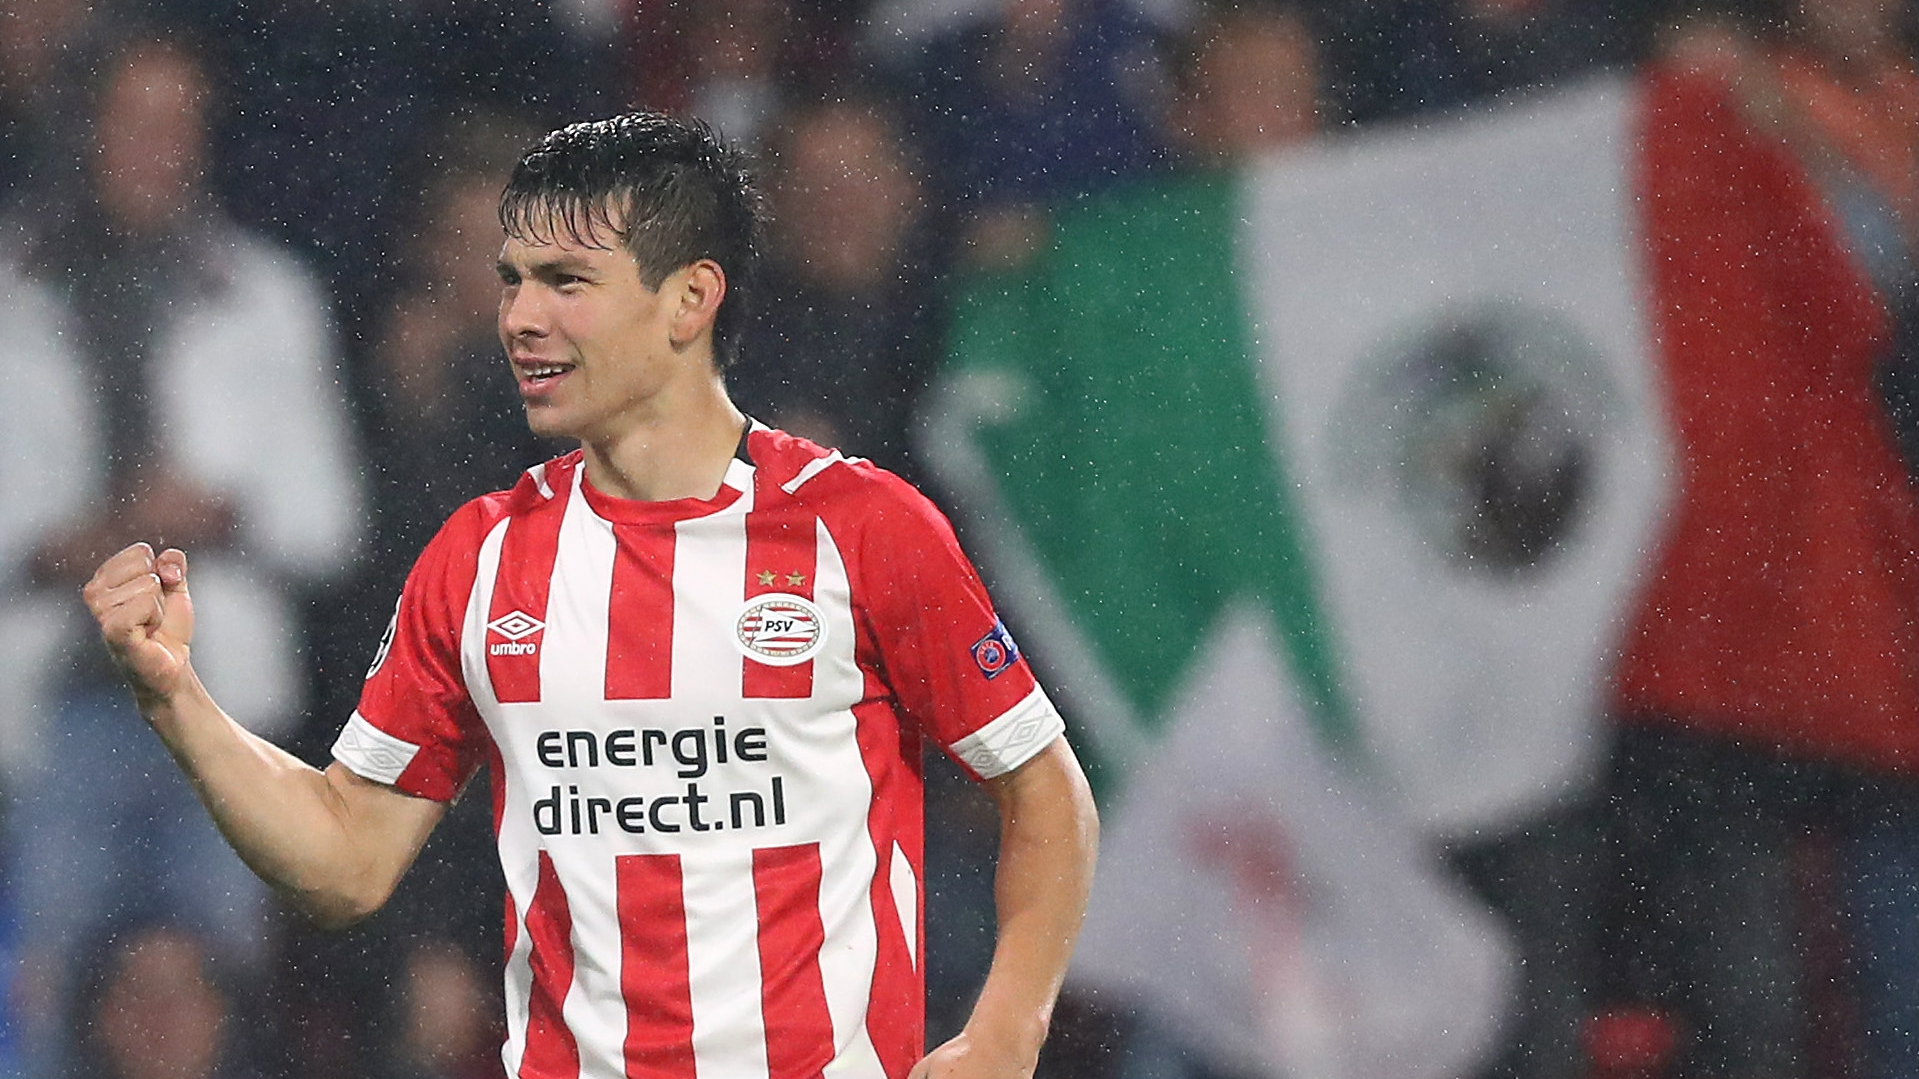 Hirving lozano better off at psv than barcelona for now for Hirving lozano squadre attuali